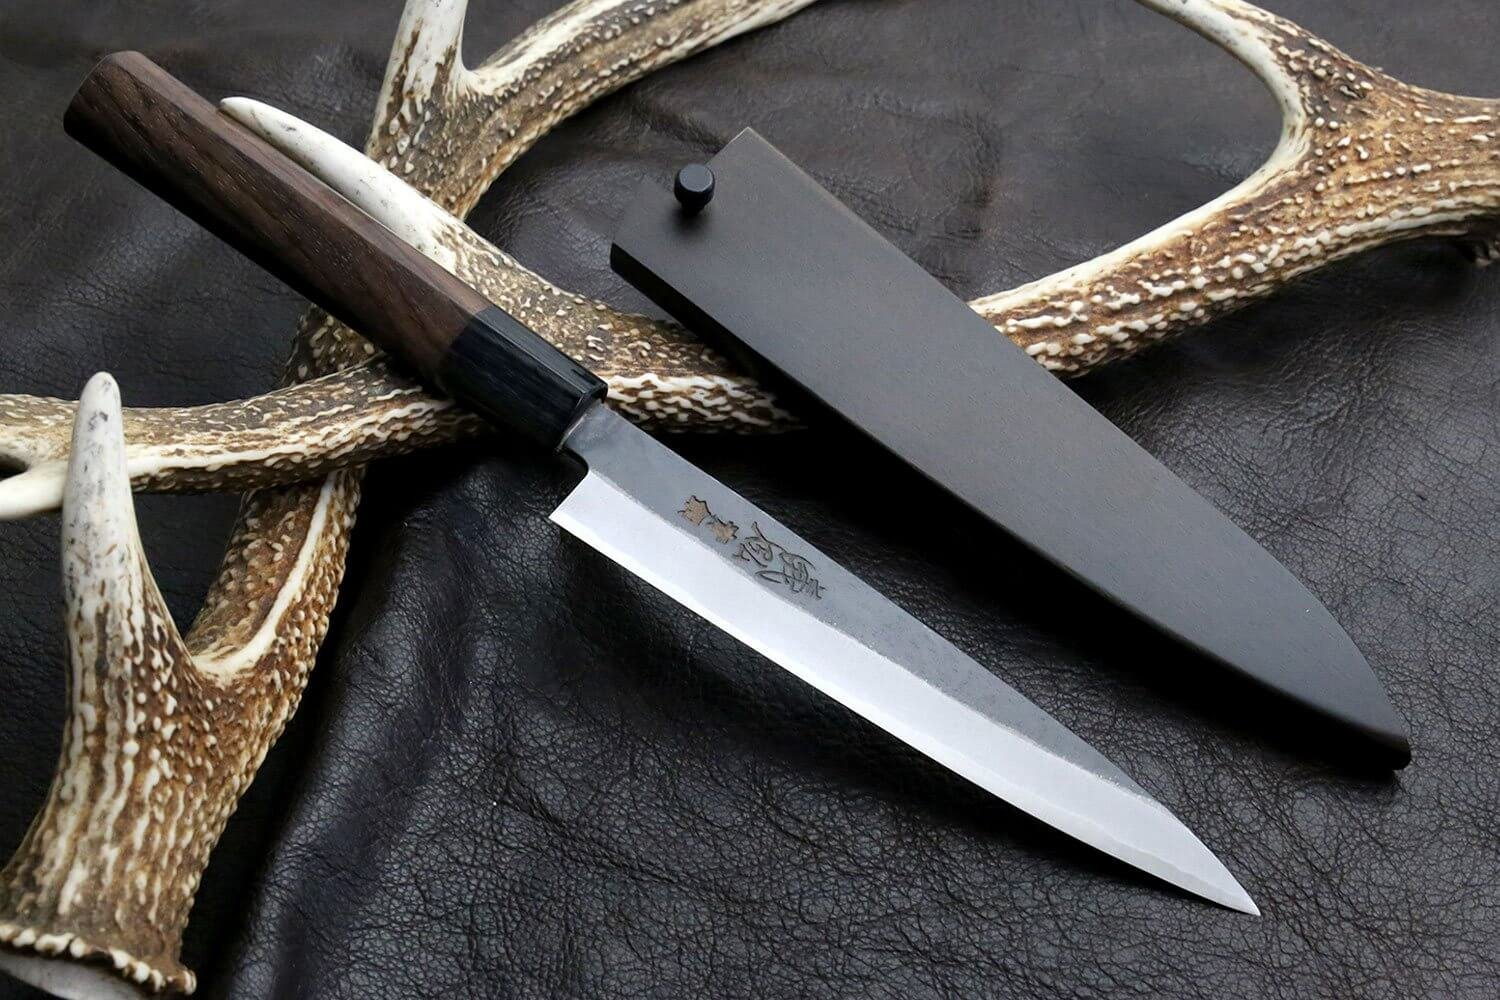 Yoshihiro Aoko(Blue Steel) Kurouchi Petty Utility Chef Knife 6 inches(150mm)